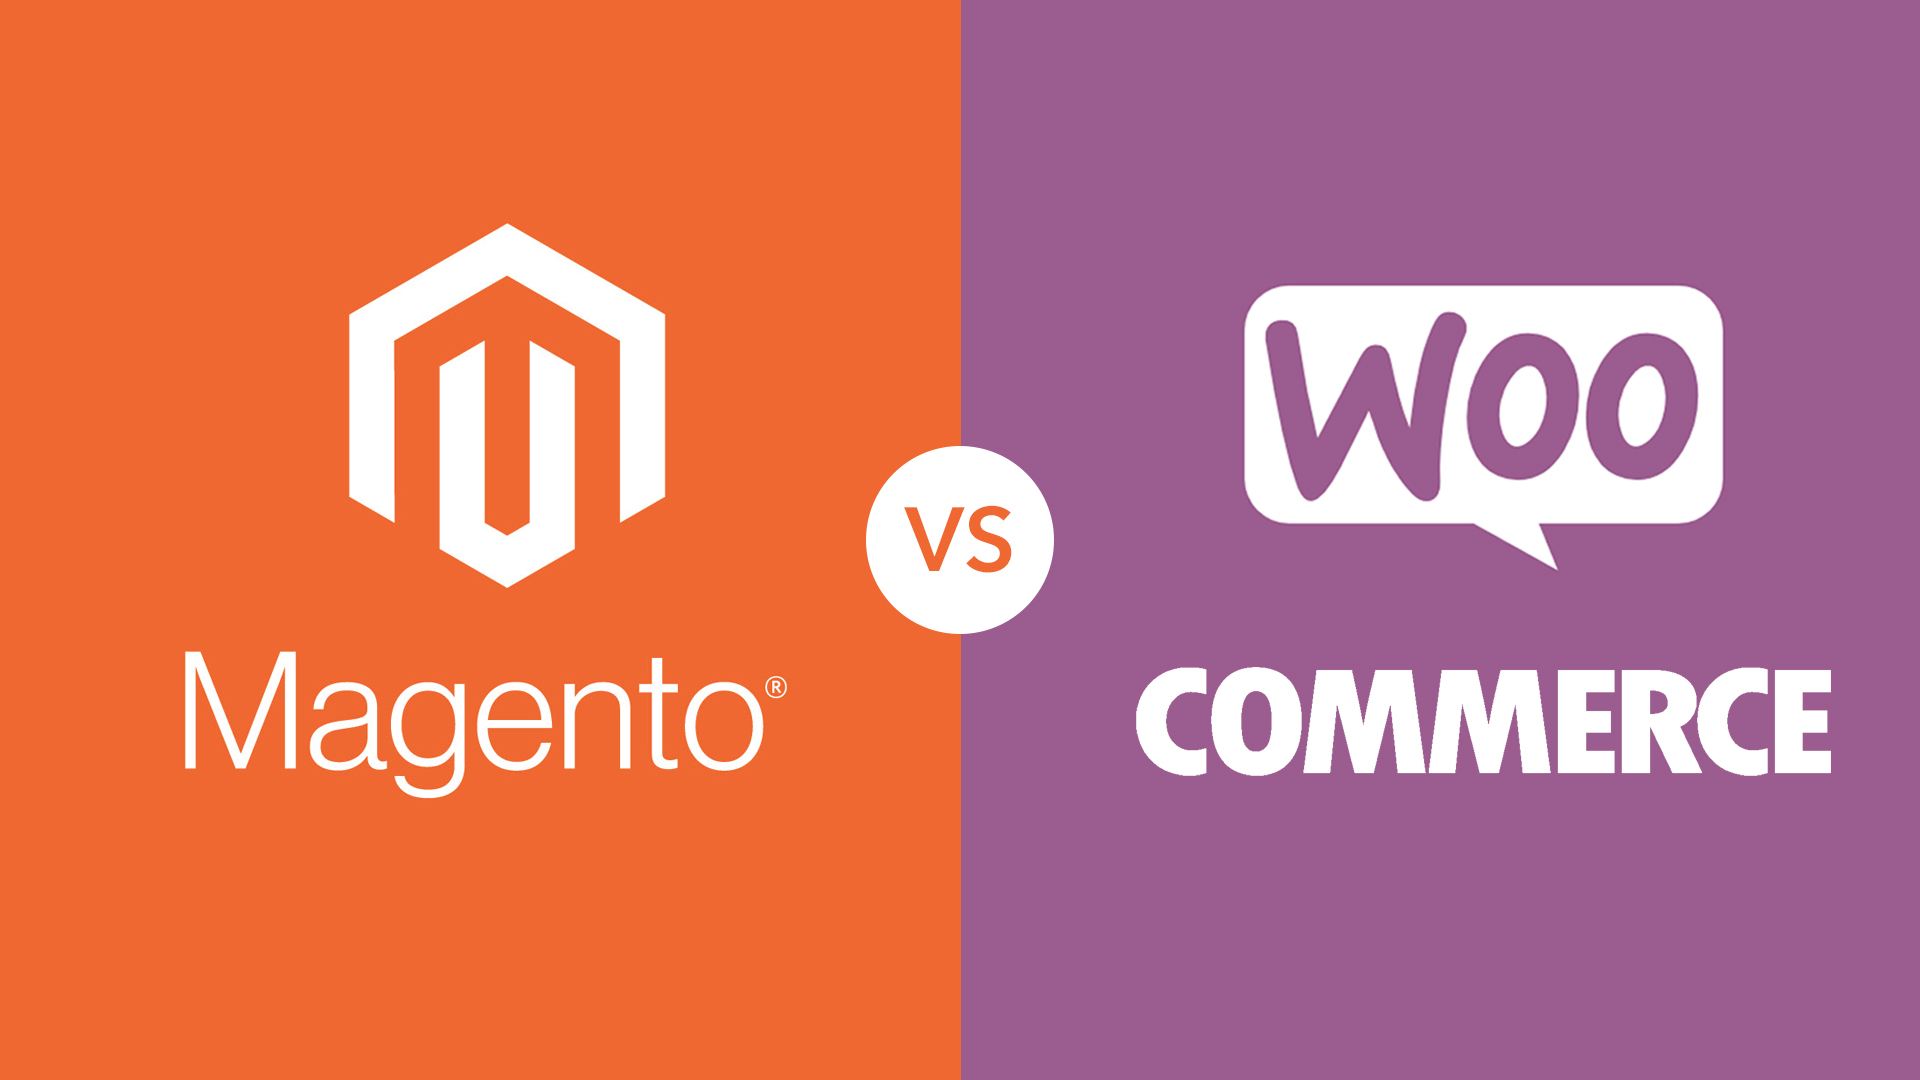 Magento vs. WooCommerce: Which Is Better for You?